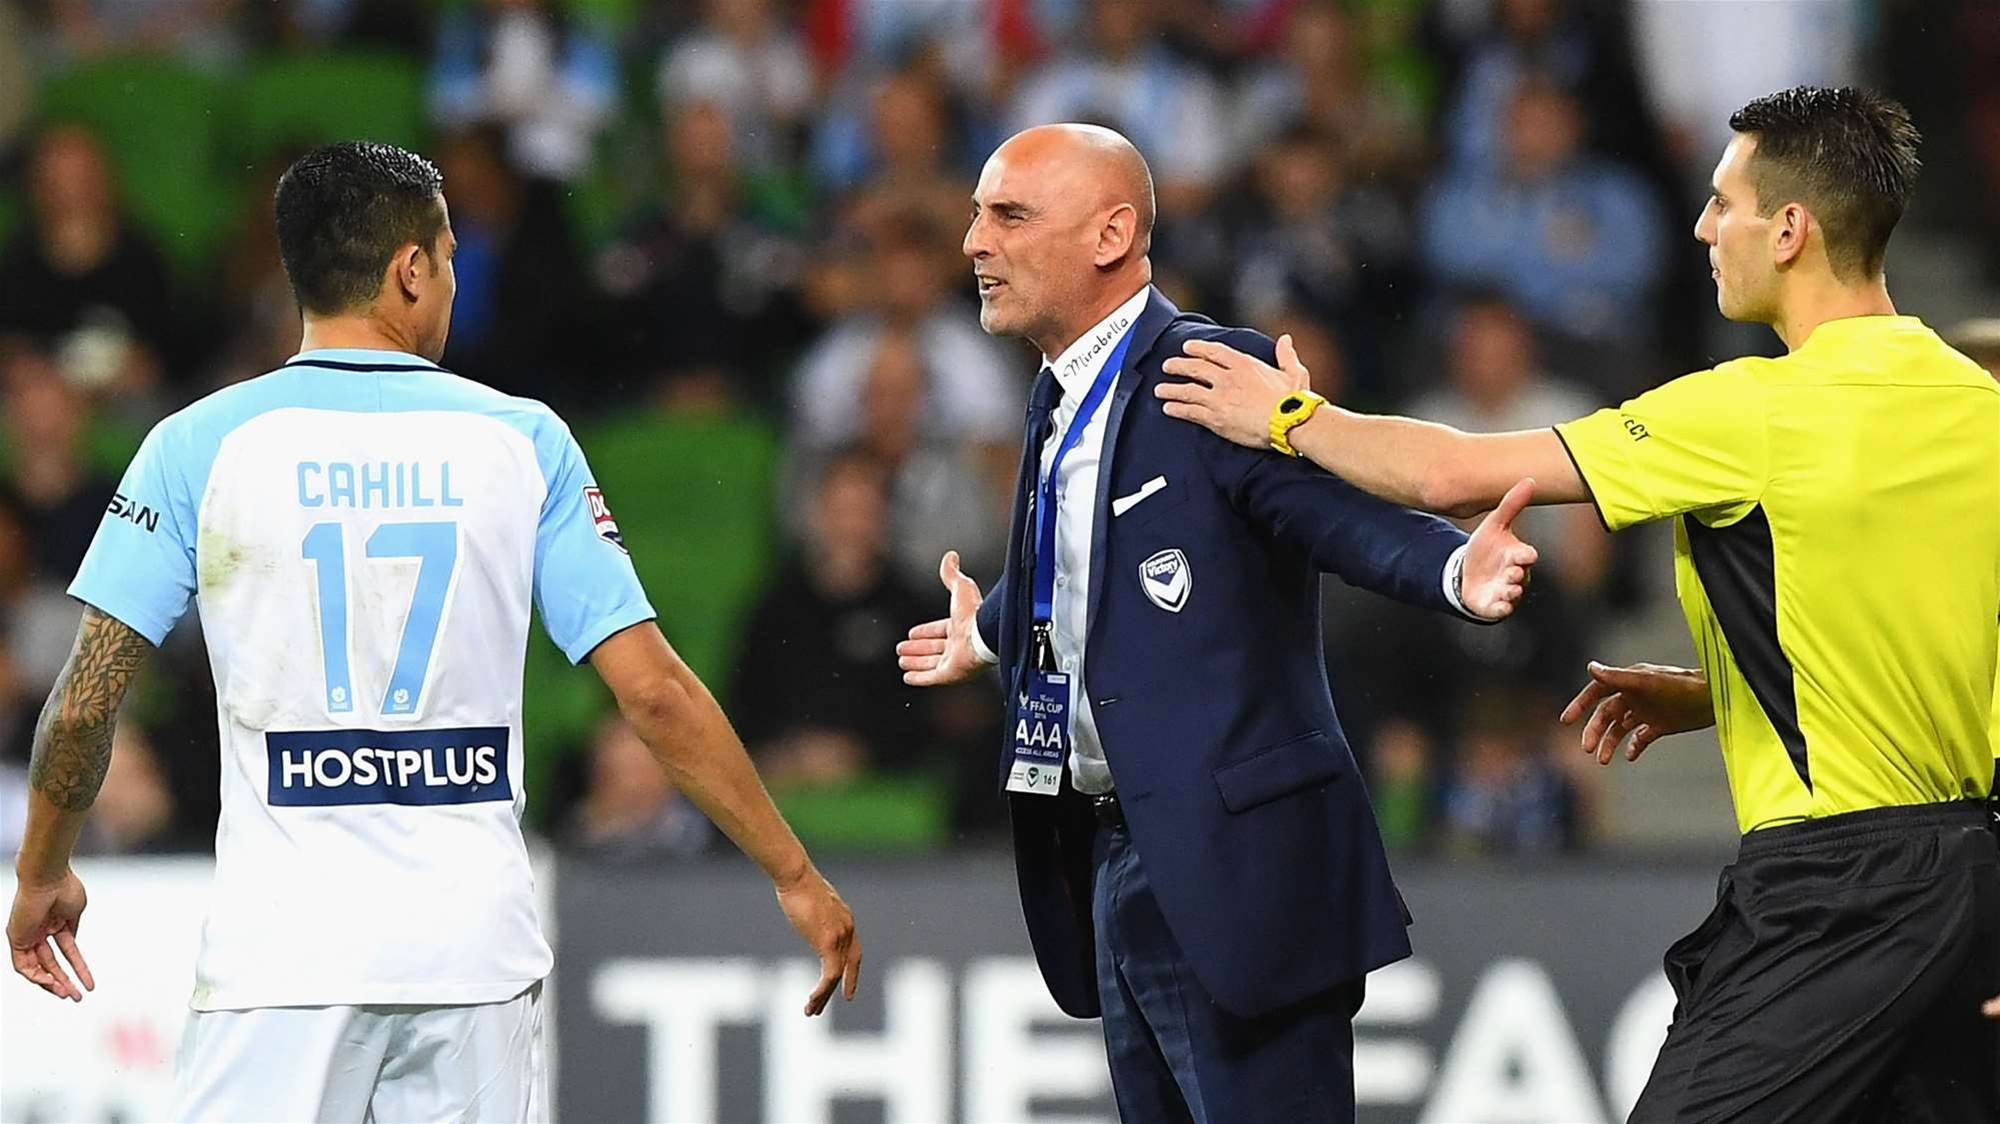 Muscat: Ben Wilson to explain rules to players